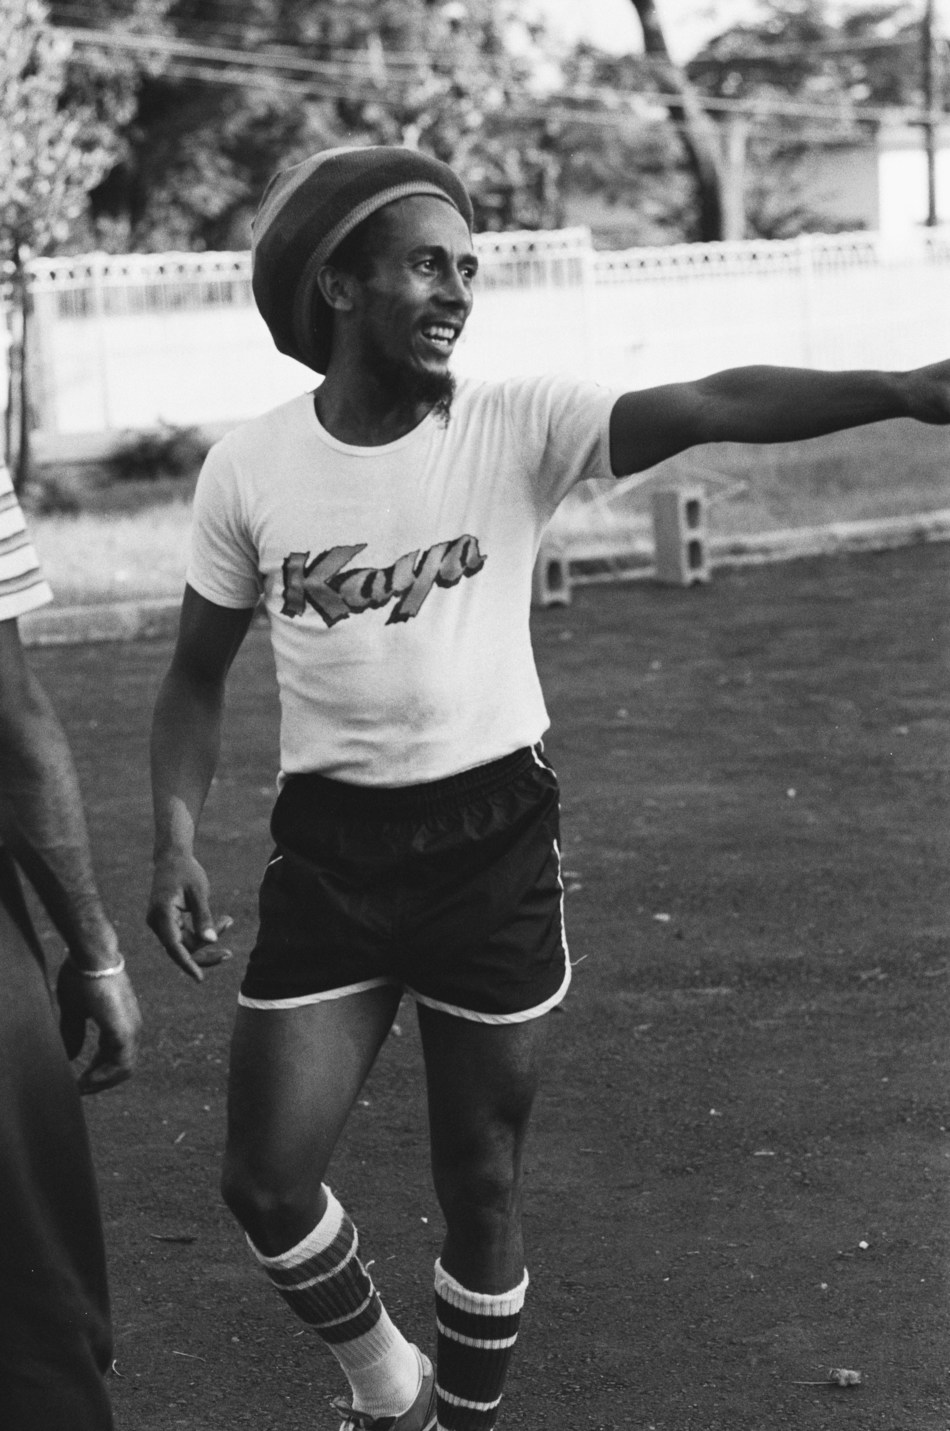 Today, episode four of Bob Marley's Legacy documentary series was released; this time exploring Bob's well-known love of soccer and his longstanding connection between the game and his music. Rhythm of the Game is available on Bob Marley's Official YouTube Channel. In other news, Tuff Gong FC has also announced a special collaboration with FIFA for a limited-edition soccer kit available exclusively on May 29 at 1pm ET in FIFA 20's Ultimate Team game mode via a limited-time-only Season Objective.